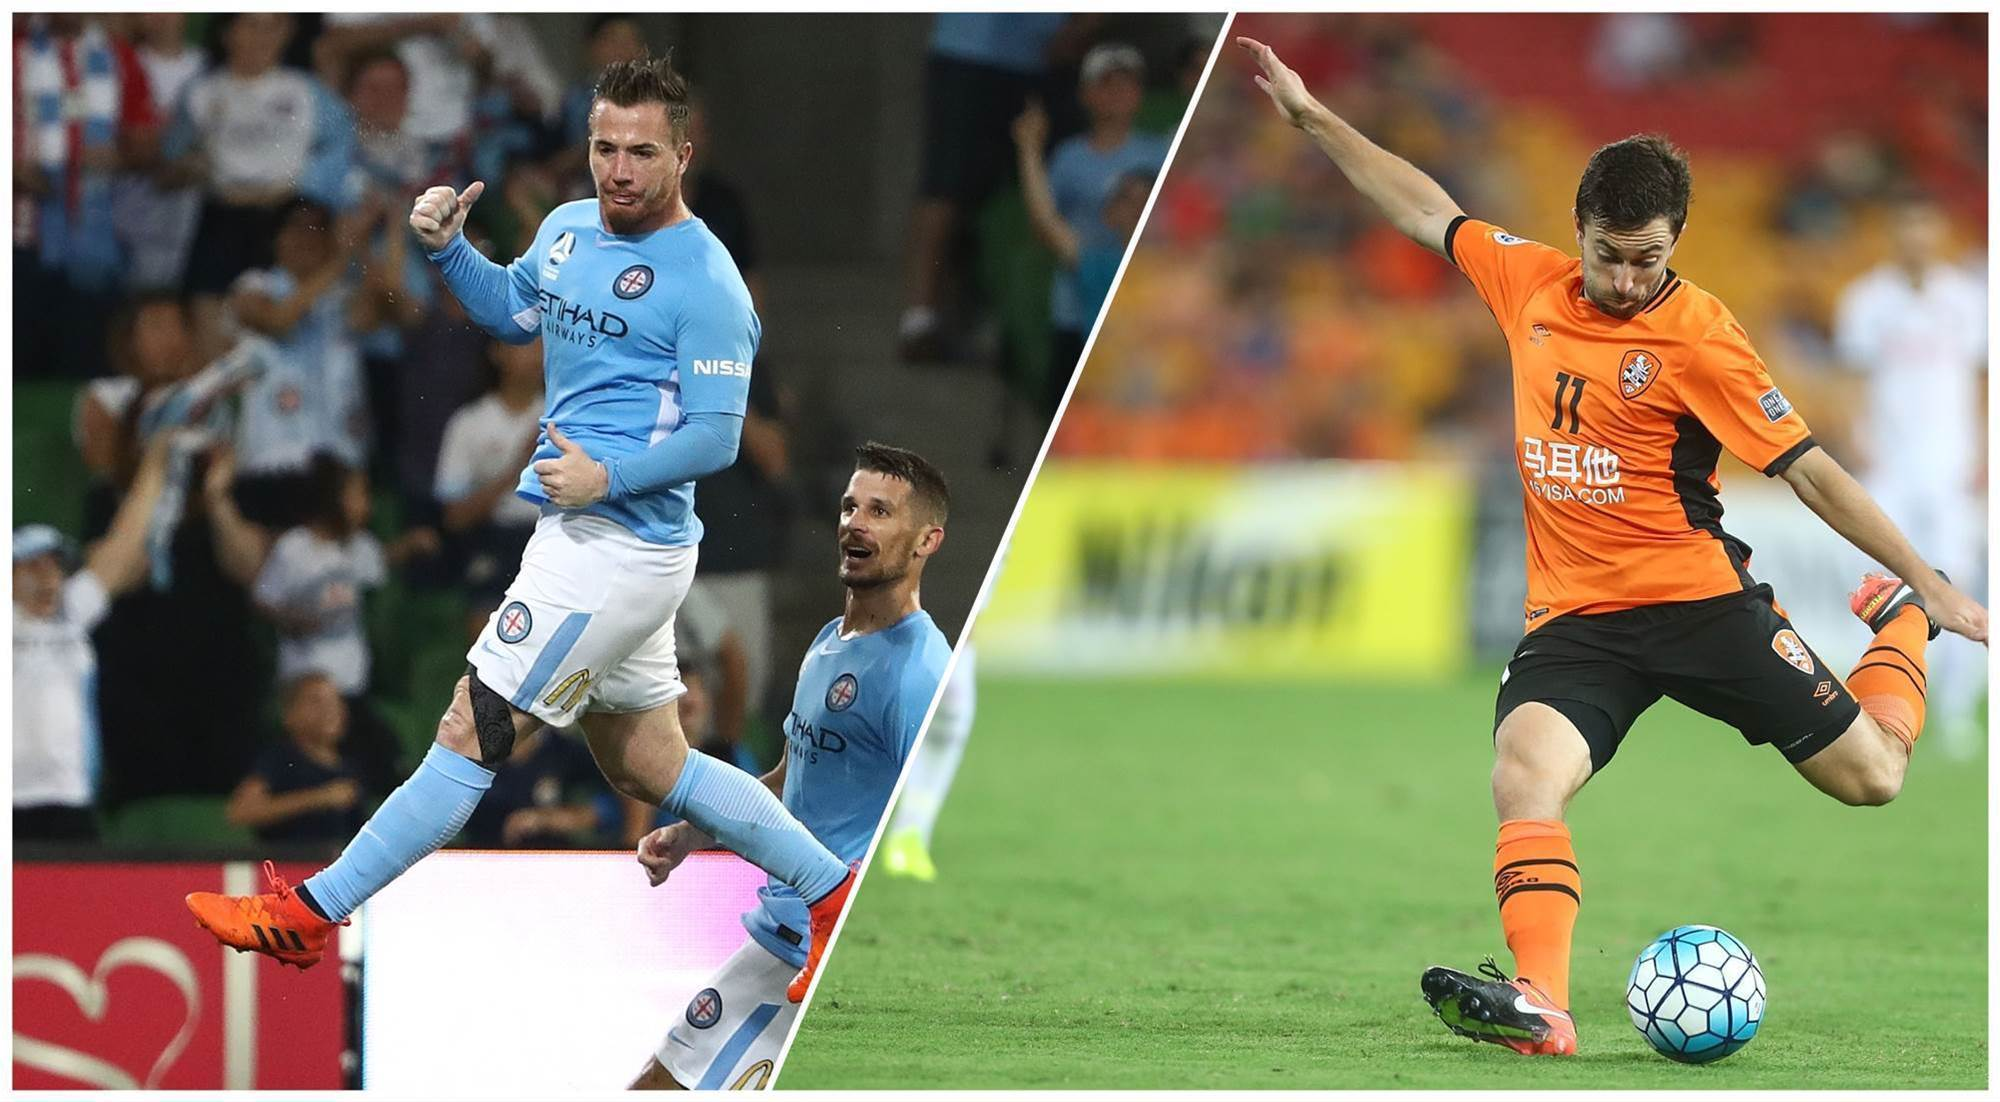 Double joy as Tommy Oar and Ross McCormack sign for the Mariners